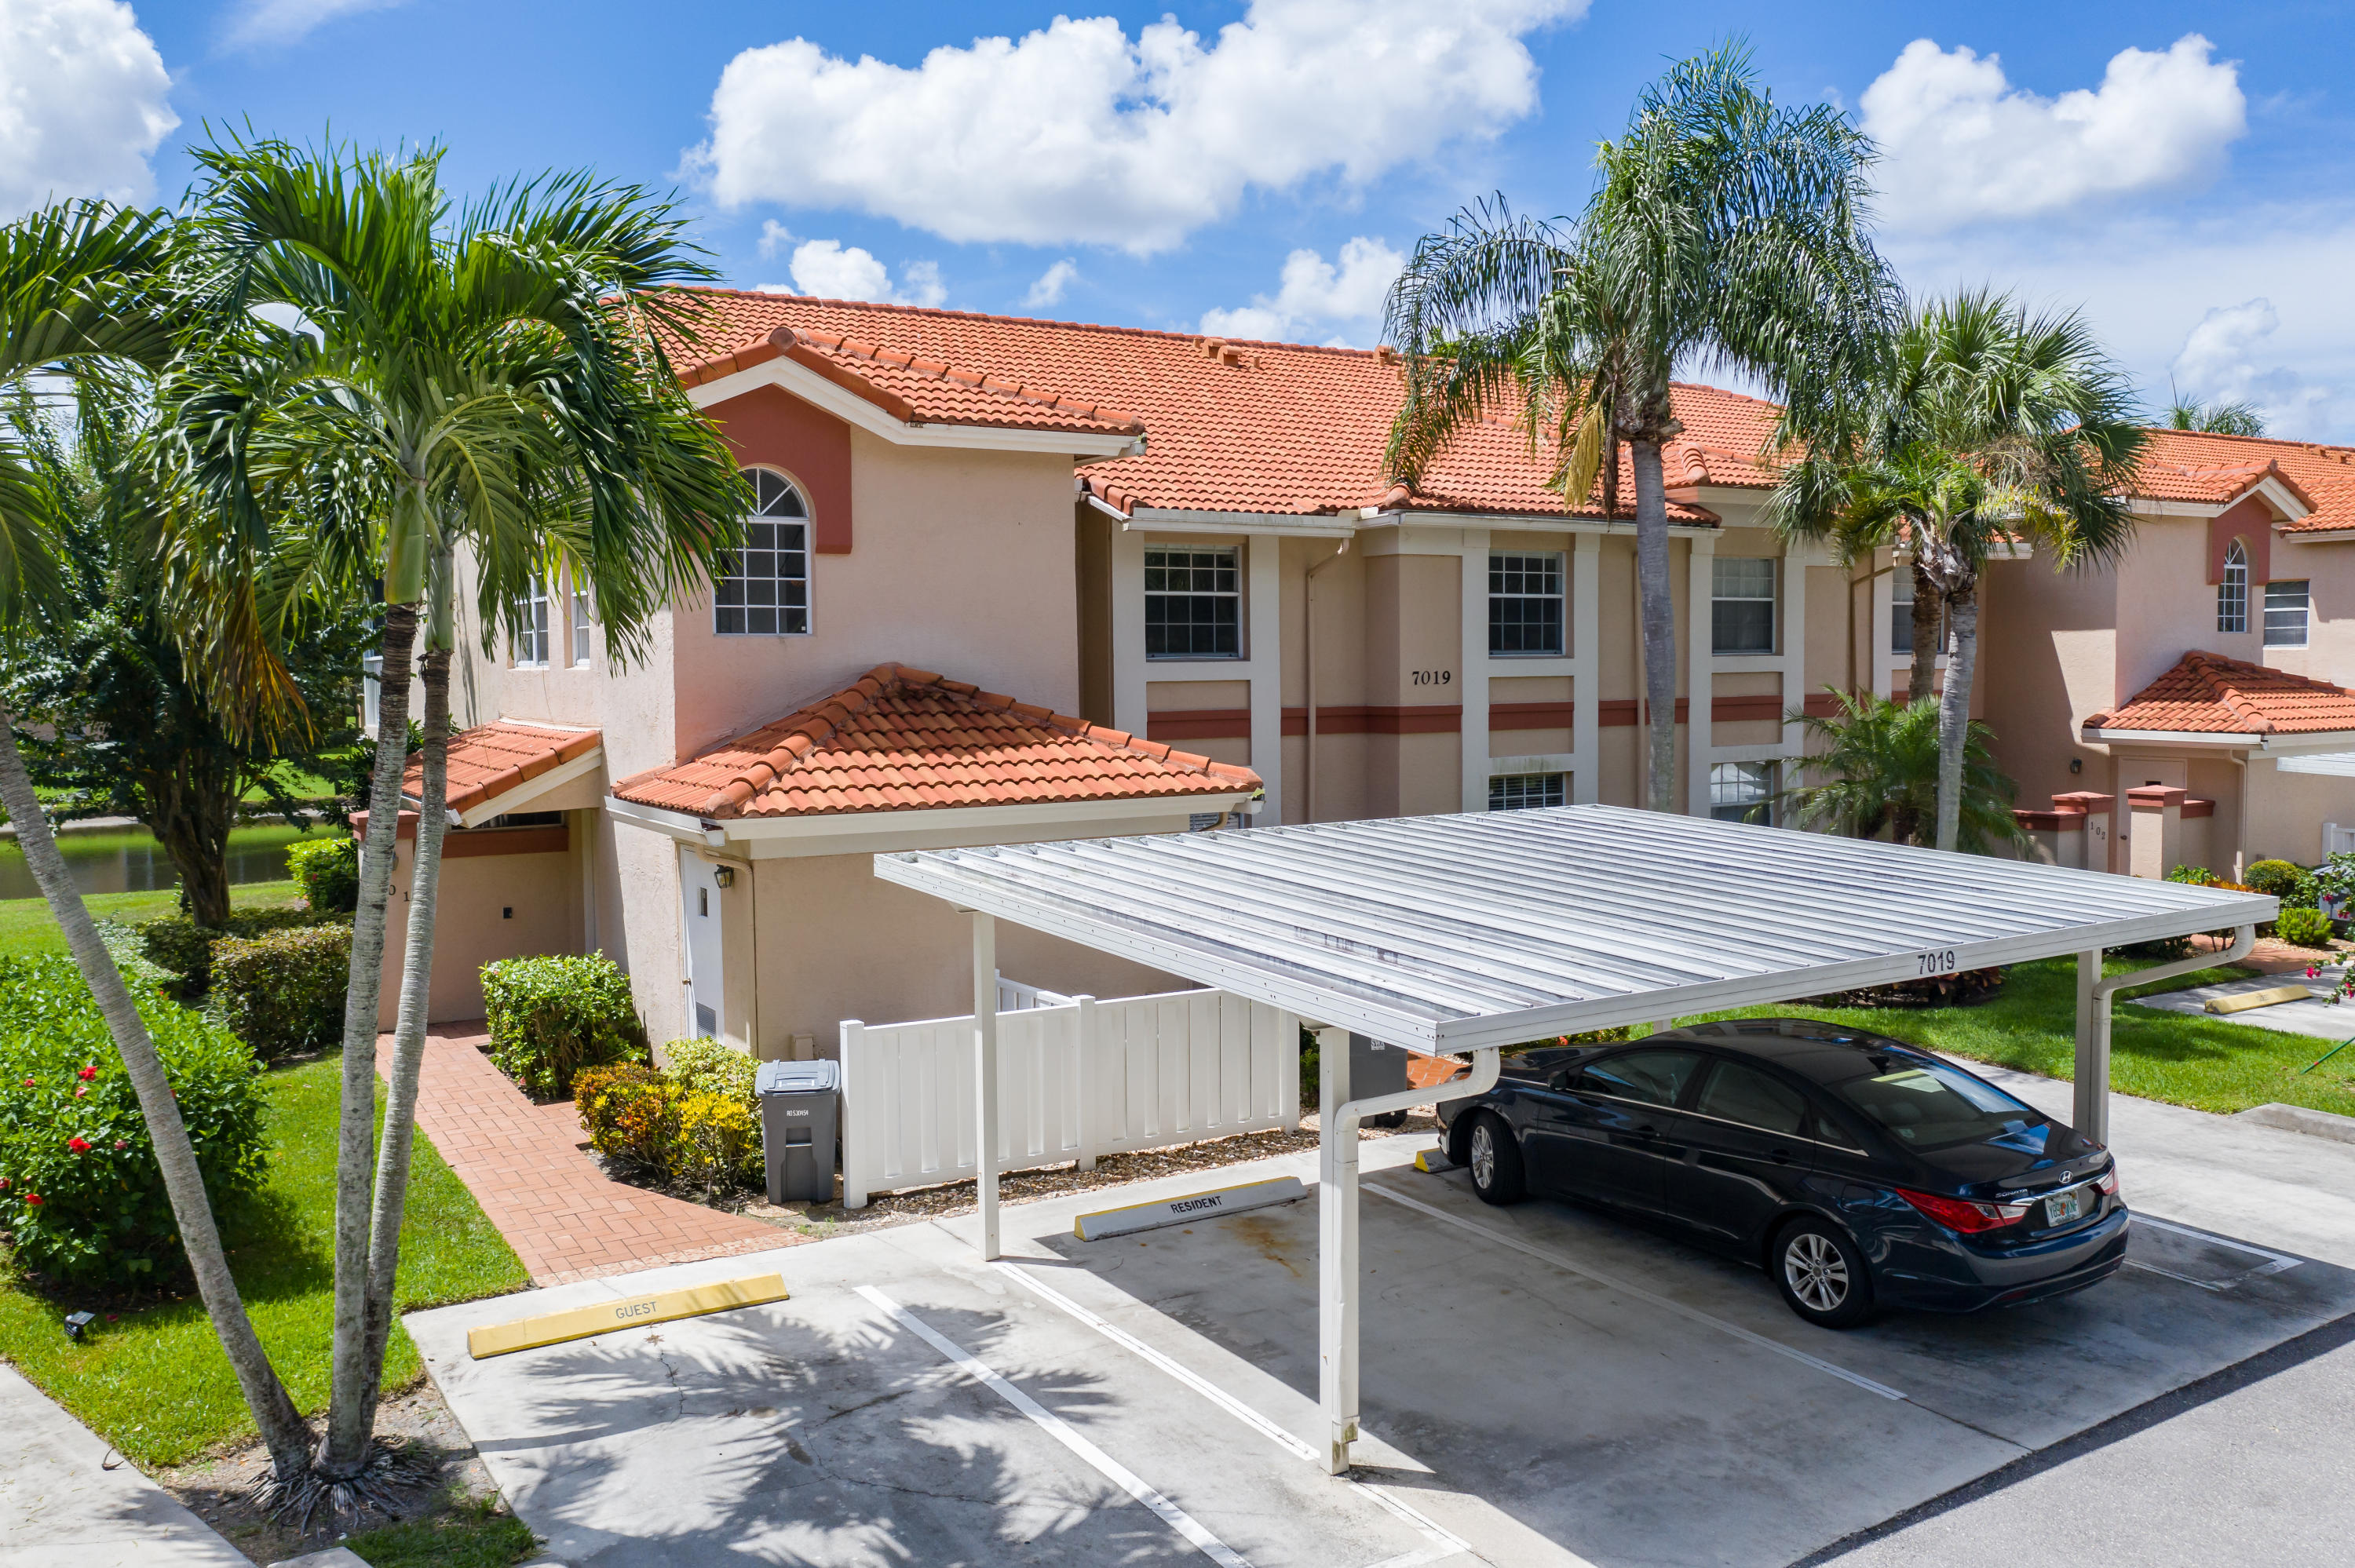 7019  Summer Tree Drive 201 For Sale 10651092, FL